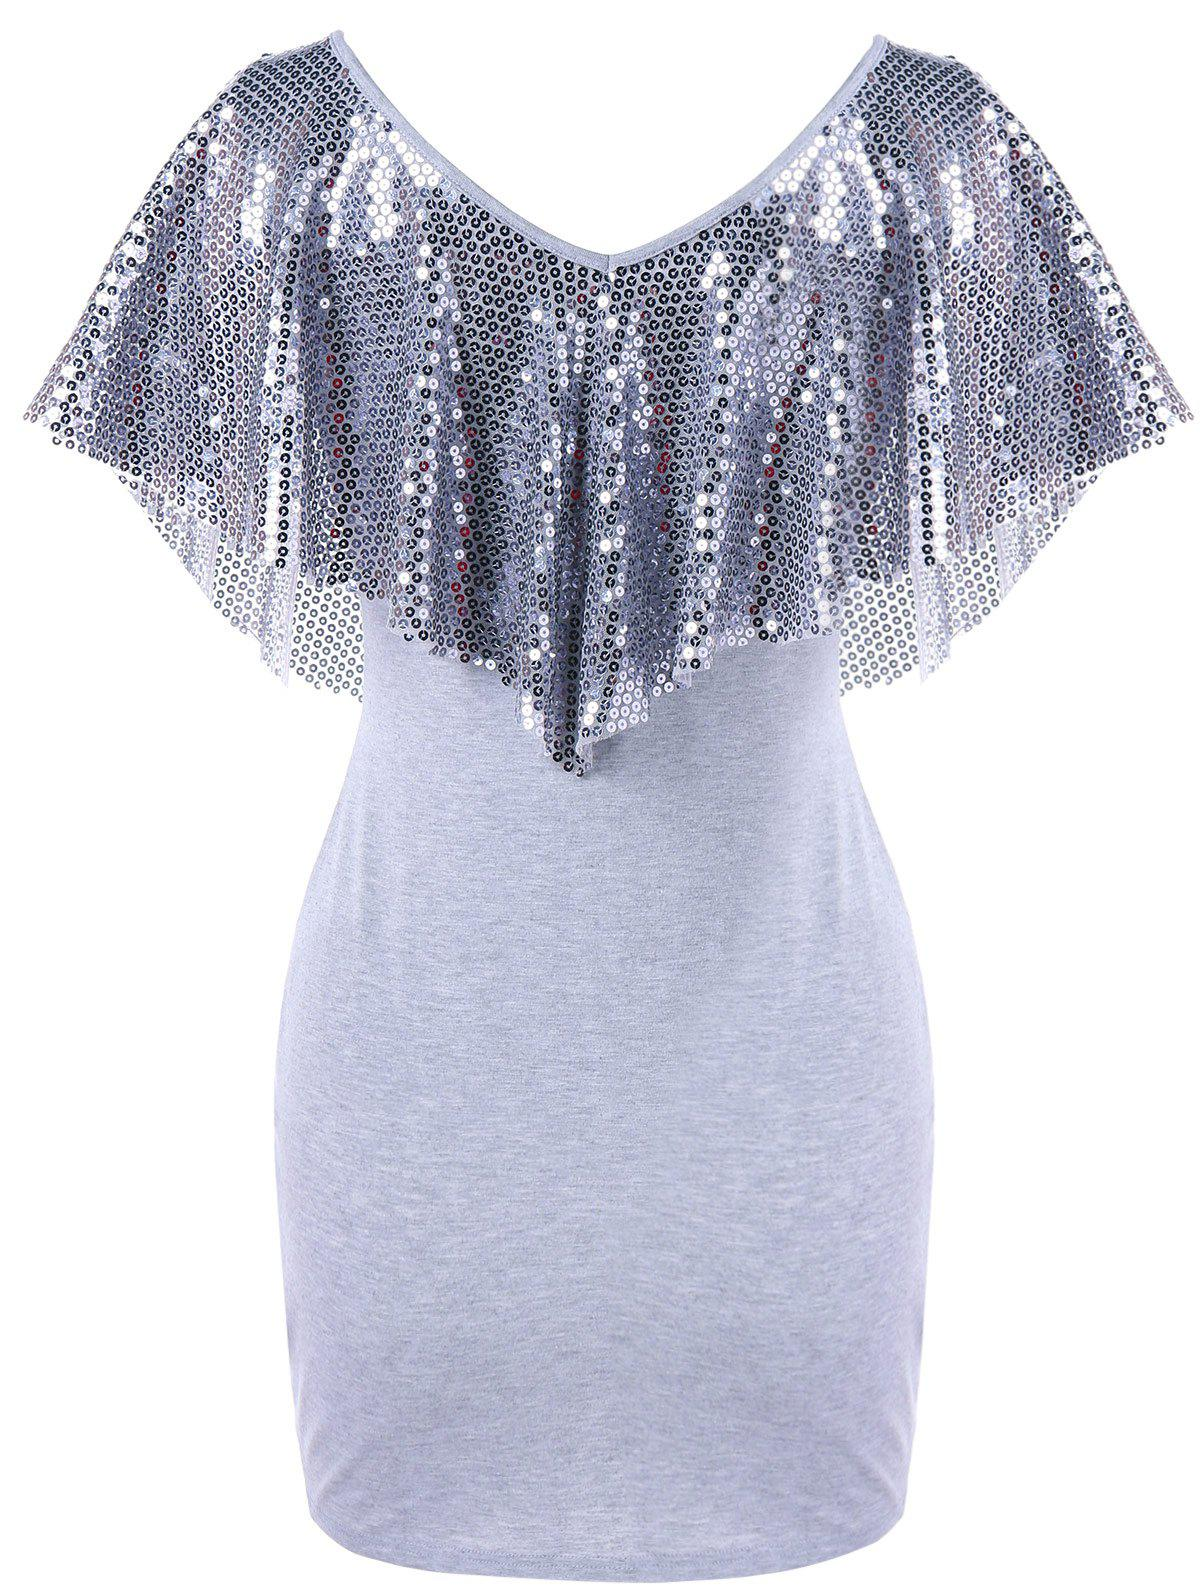 Sequined Trim Overlay Mini Dress - LIGHT GRAY XL